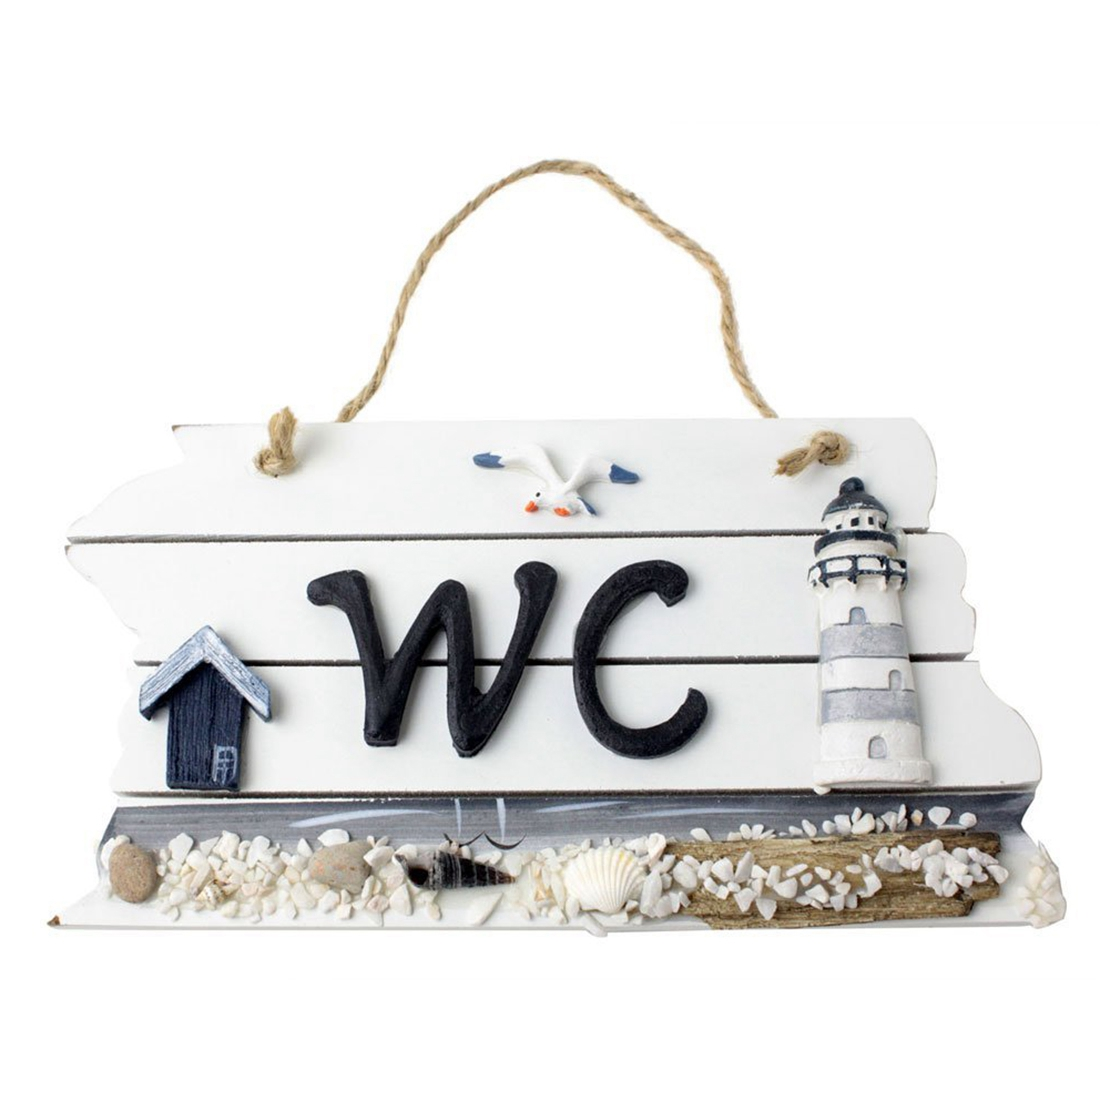 HHTL-Mediterranean Style Nordic Wooden WC Shingle Doorplate/Plaque/Sign image